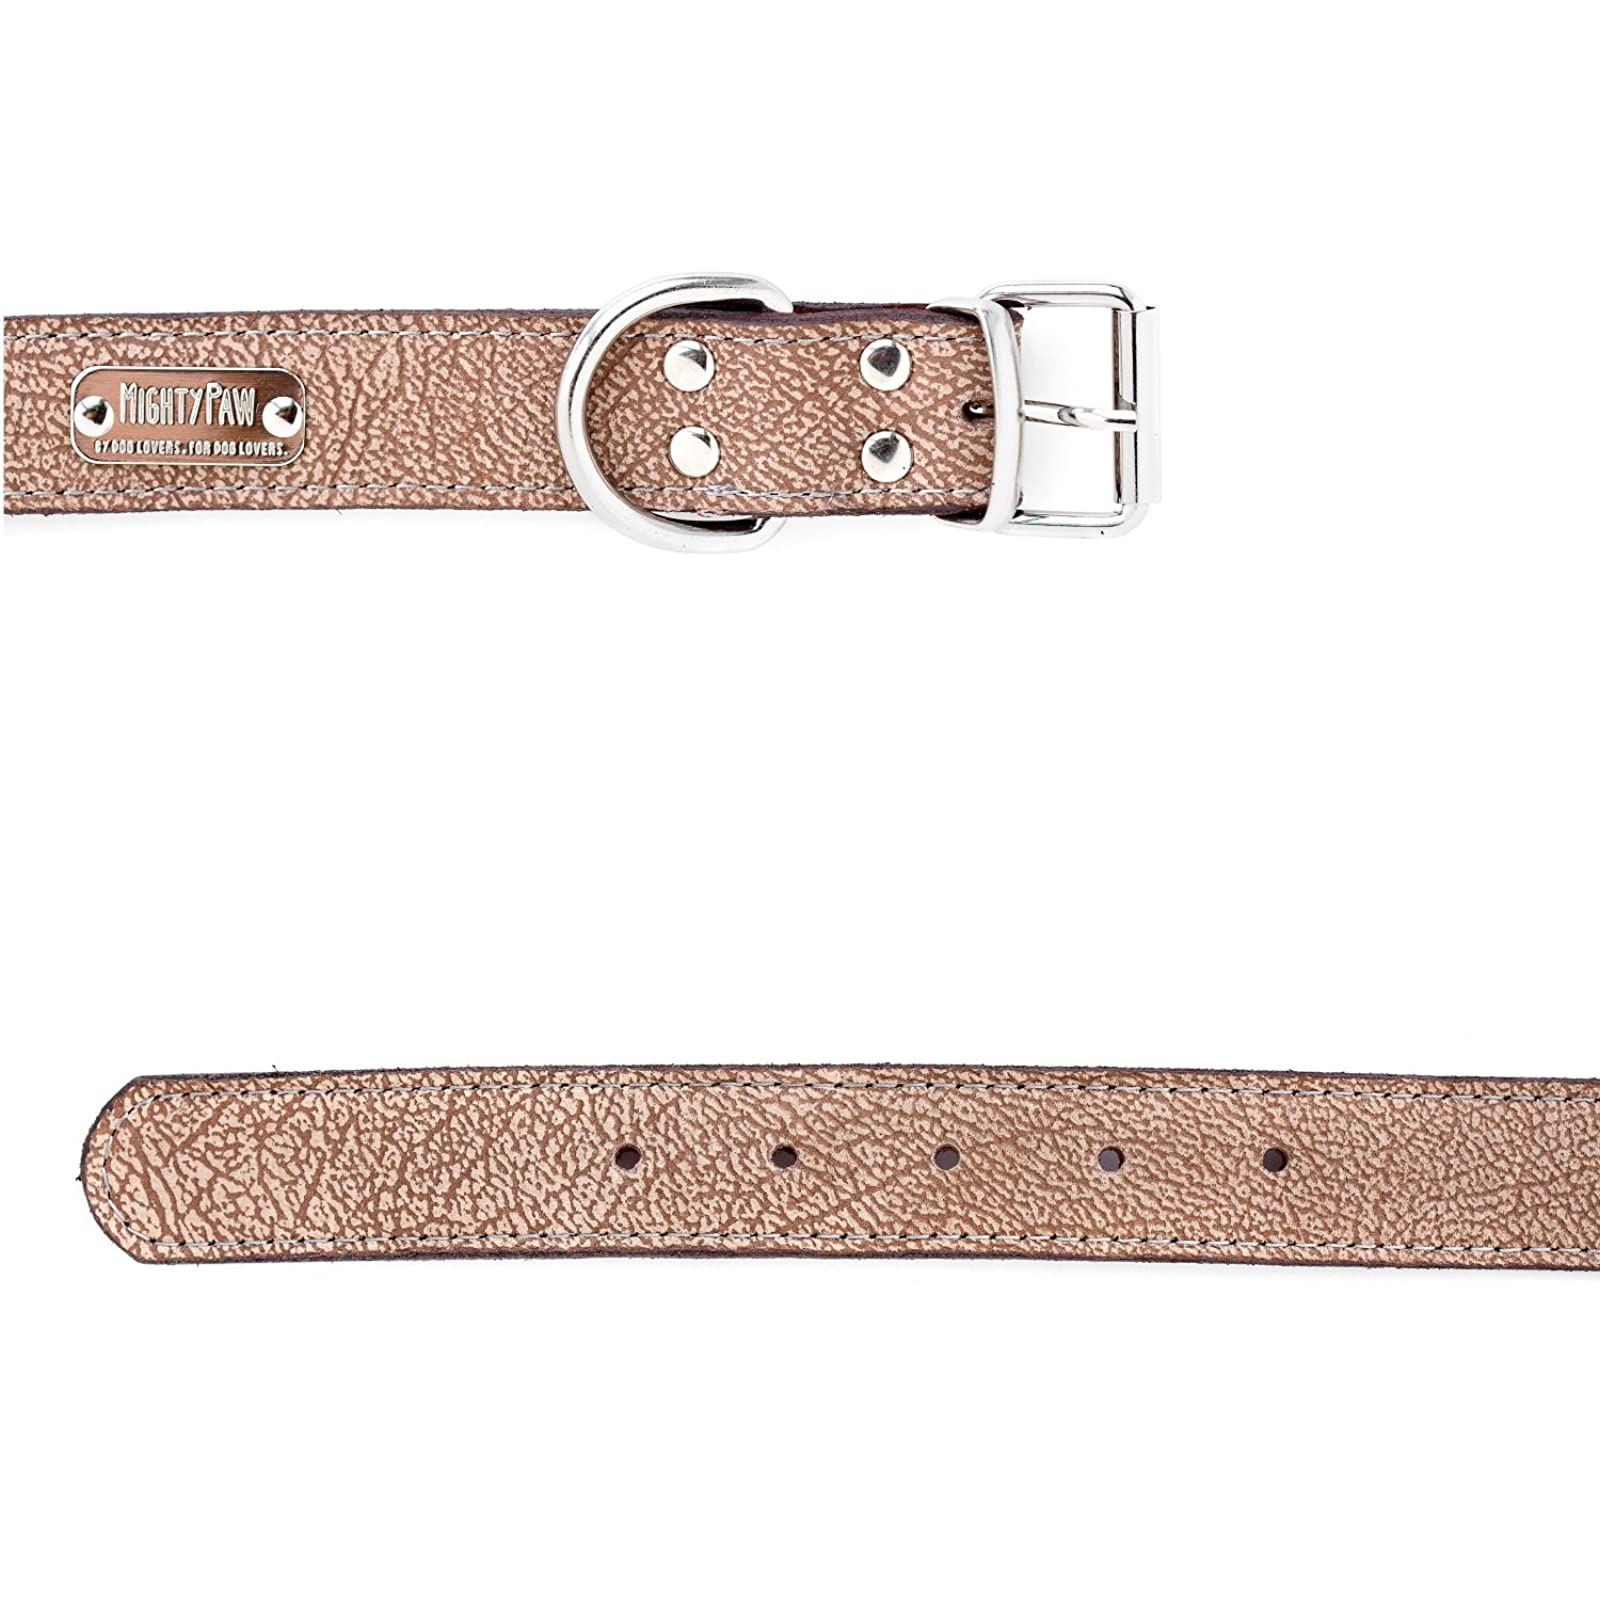 Mighty Paw Leather Dog Collar Super Soft Light Brown - 9